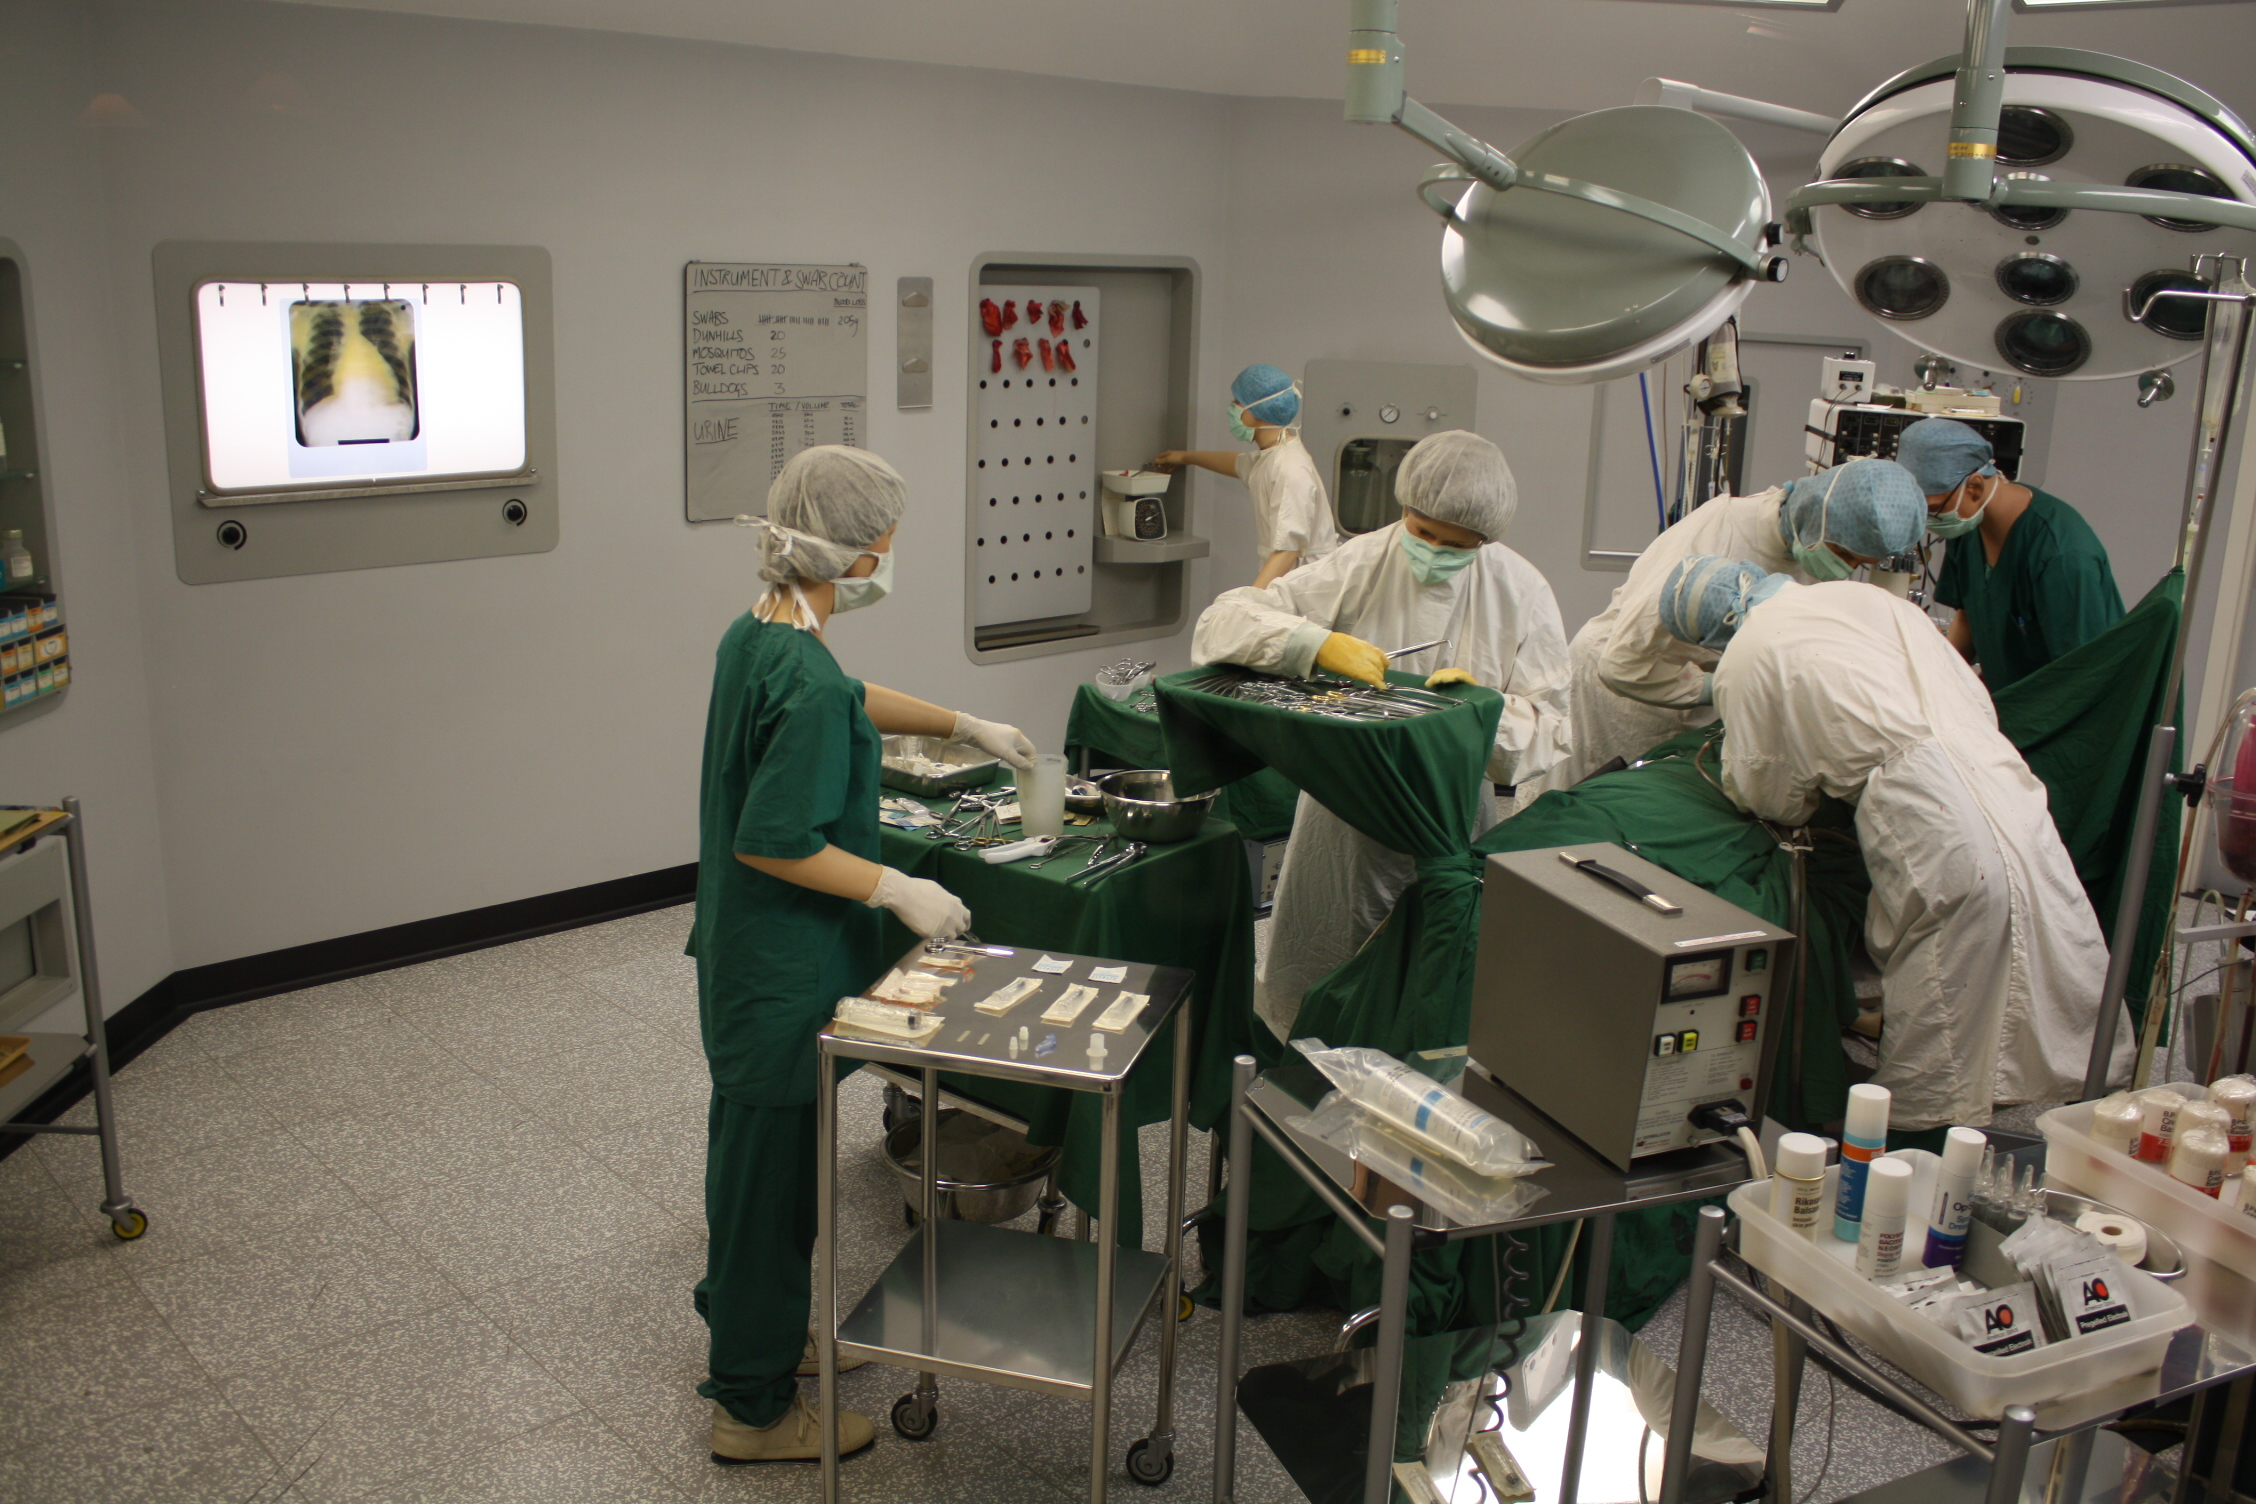 operating theatre Operating theatre definition at dictionarycom, a free online dictionary with pronunciation, synonyms and translation look it up now.